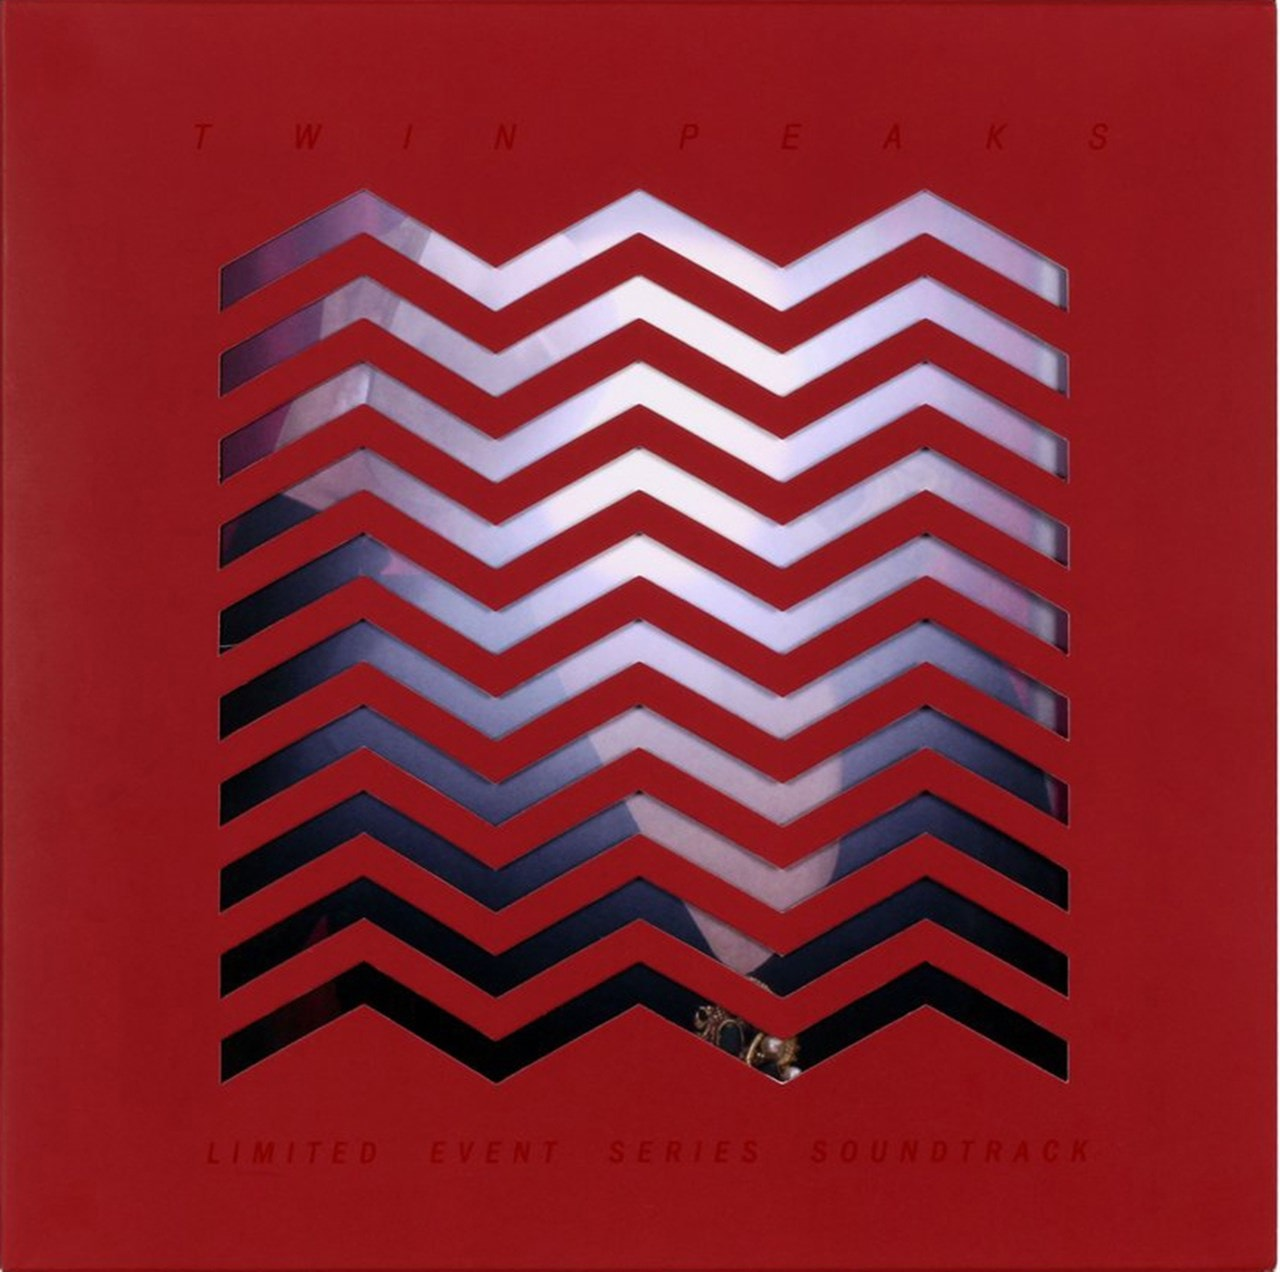 Twin Peaks (Limited Event Series Soundtrack) - 1